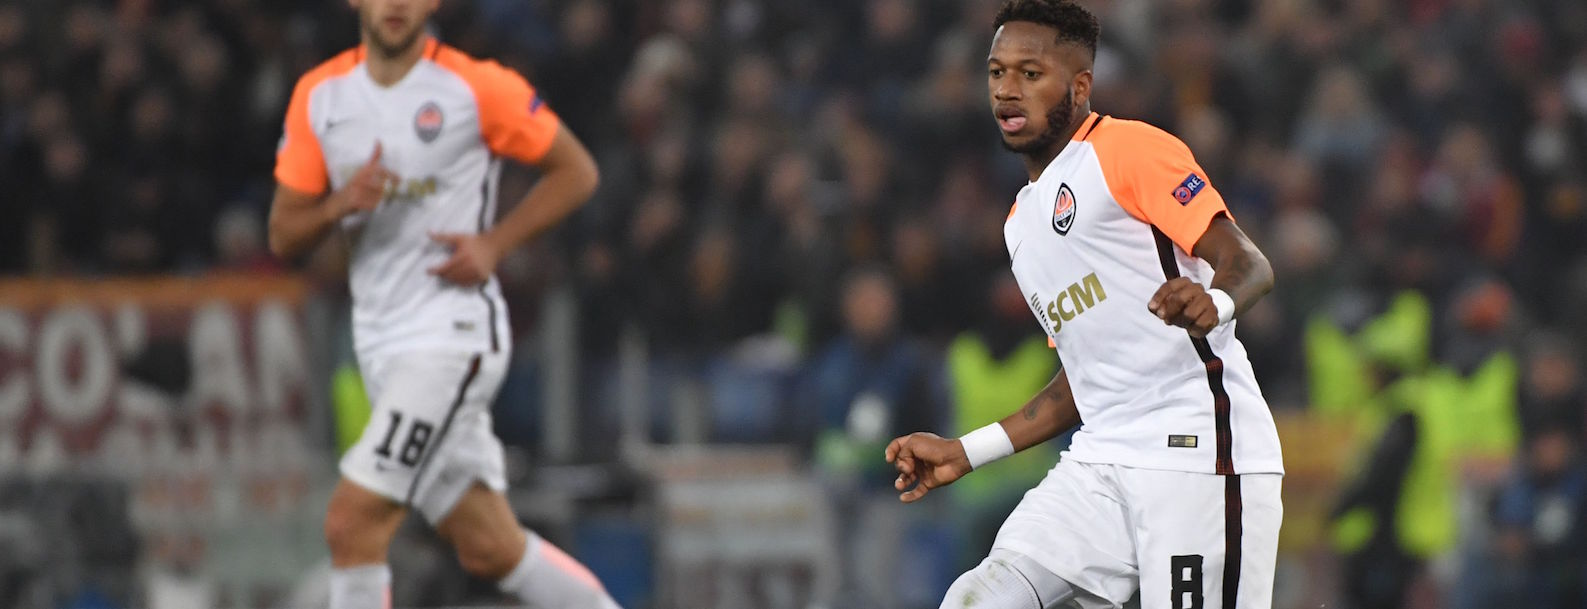 Shakhtar Donetsk chief executive Sergei Palkin confirms Fred will move to Manchester in the summer